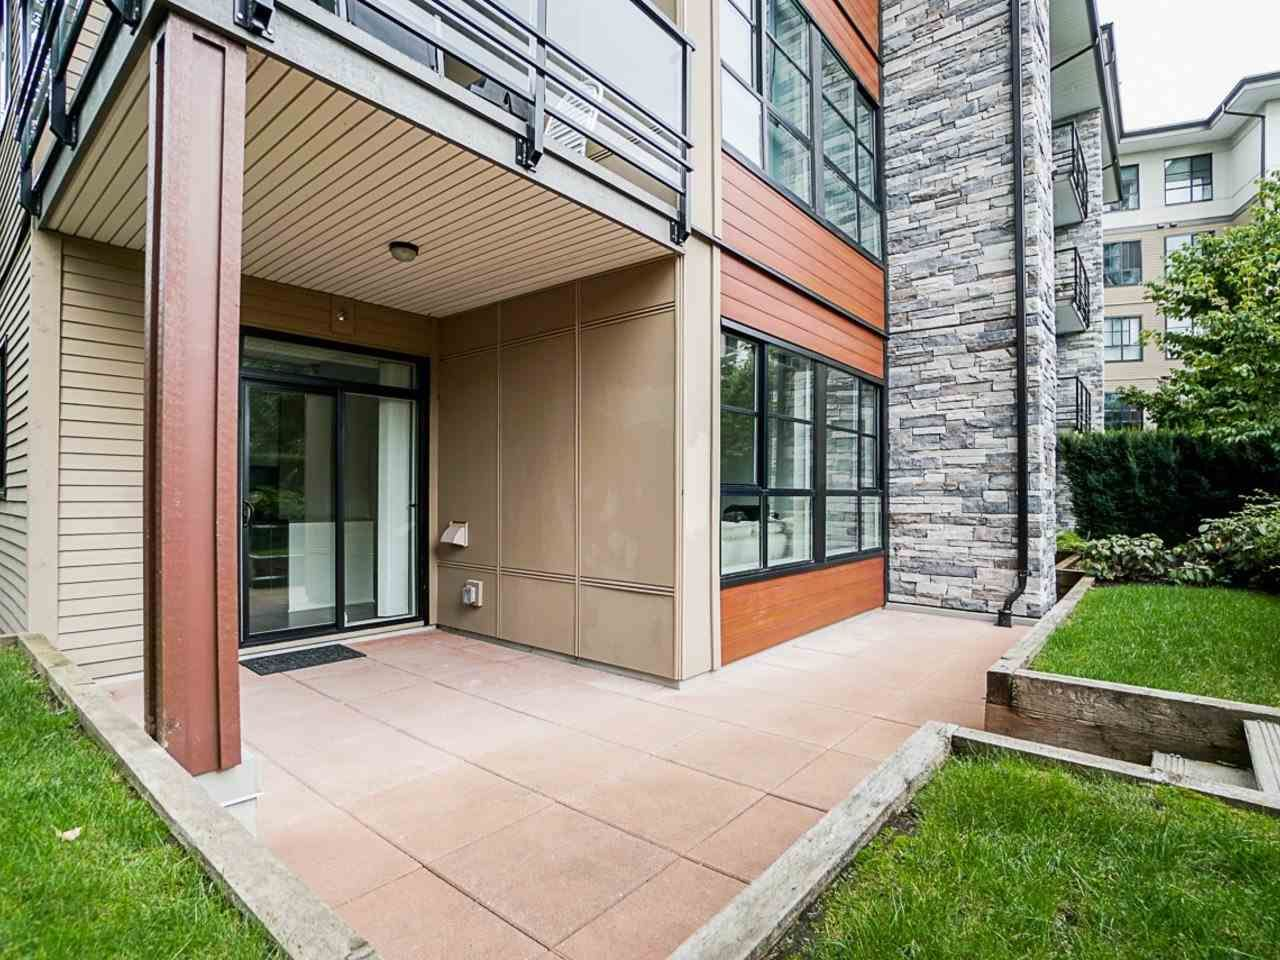 Photo 33: Photos: 108 1151 WINDSOR Mews in Coquitlam: New Horizons Condo for sale : MLS®# R2500299